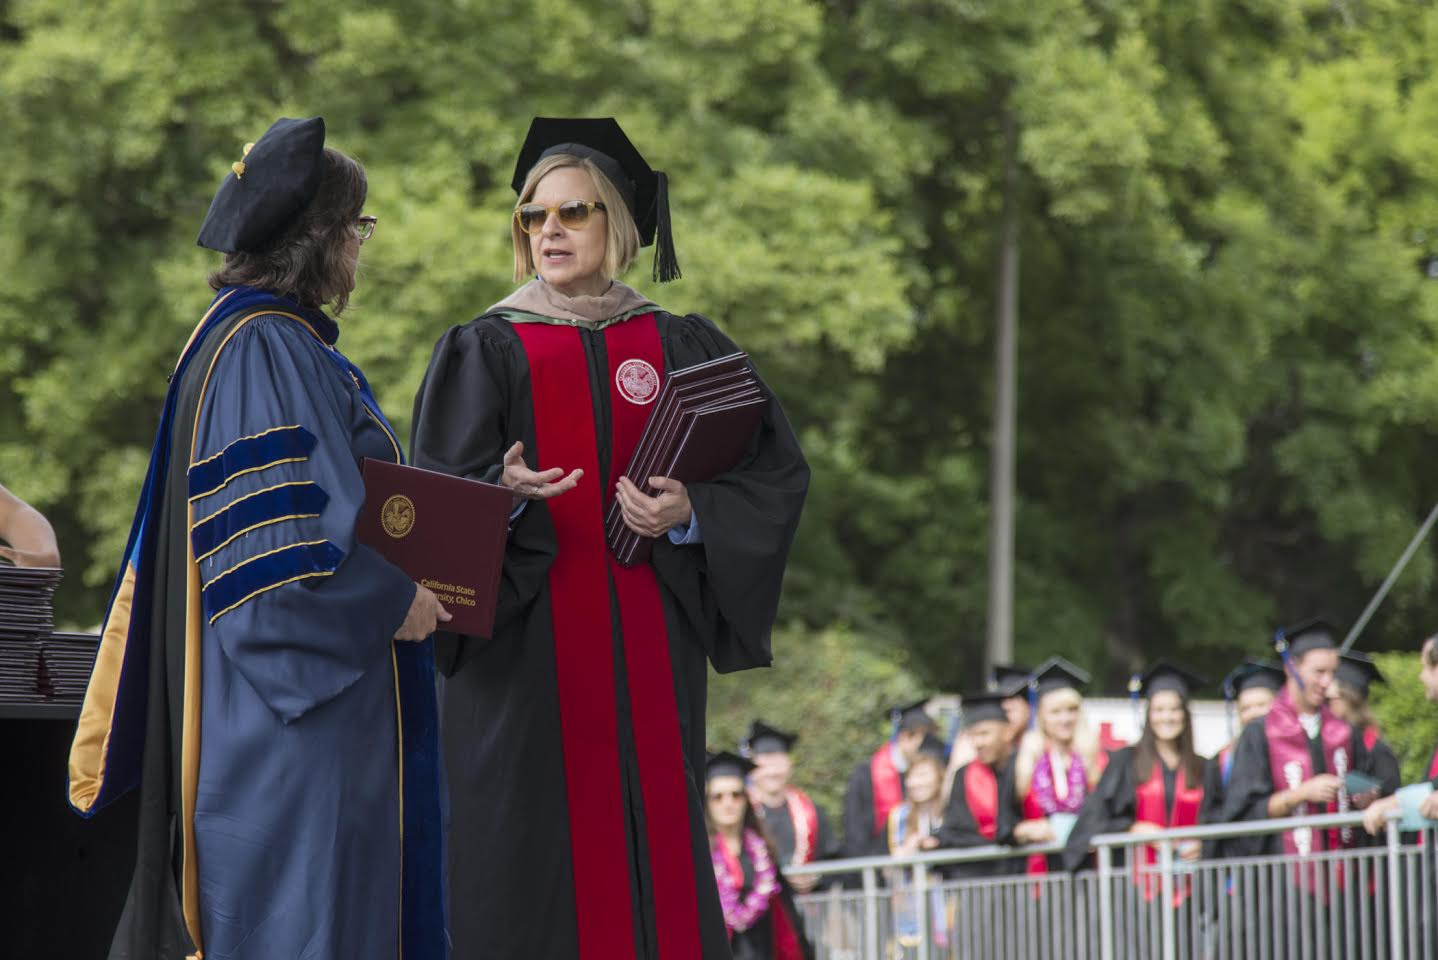 Susan Elrod (left) and Lori Hoffman (right) present diplomas to graduates during the Commencement ceremony for Colleges of Humanities And Fine Arts and Business at University Stadium on Sunday, May 17, 2015 in Chico, Calif.